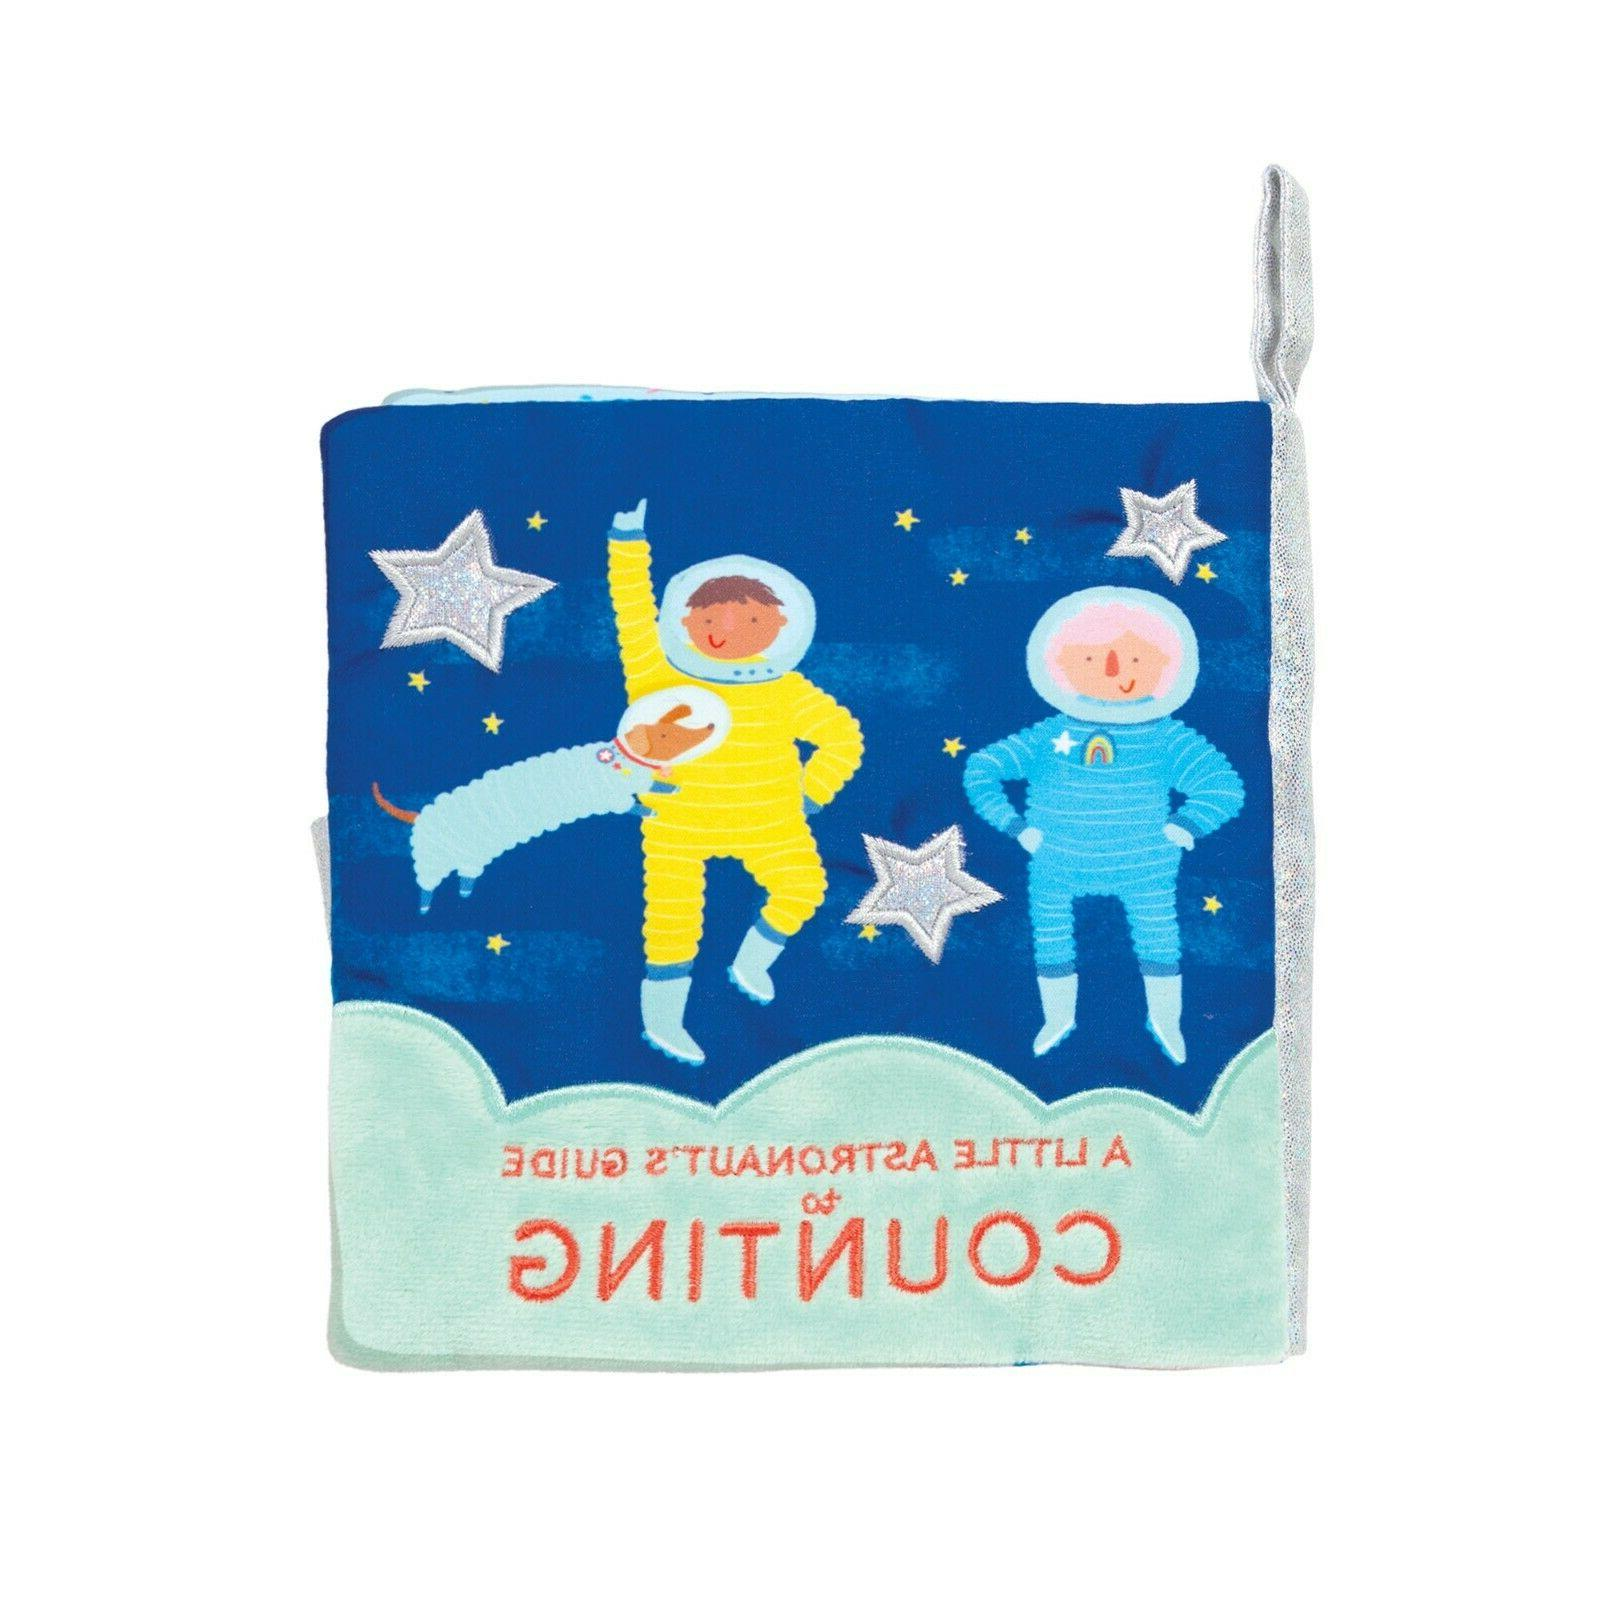 space themed soft baby early counting book